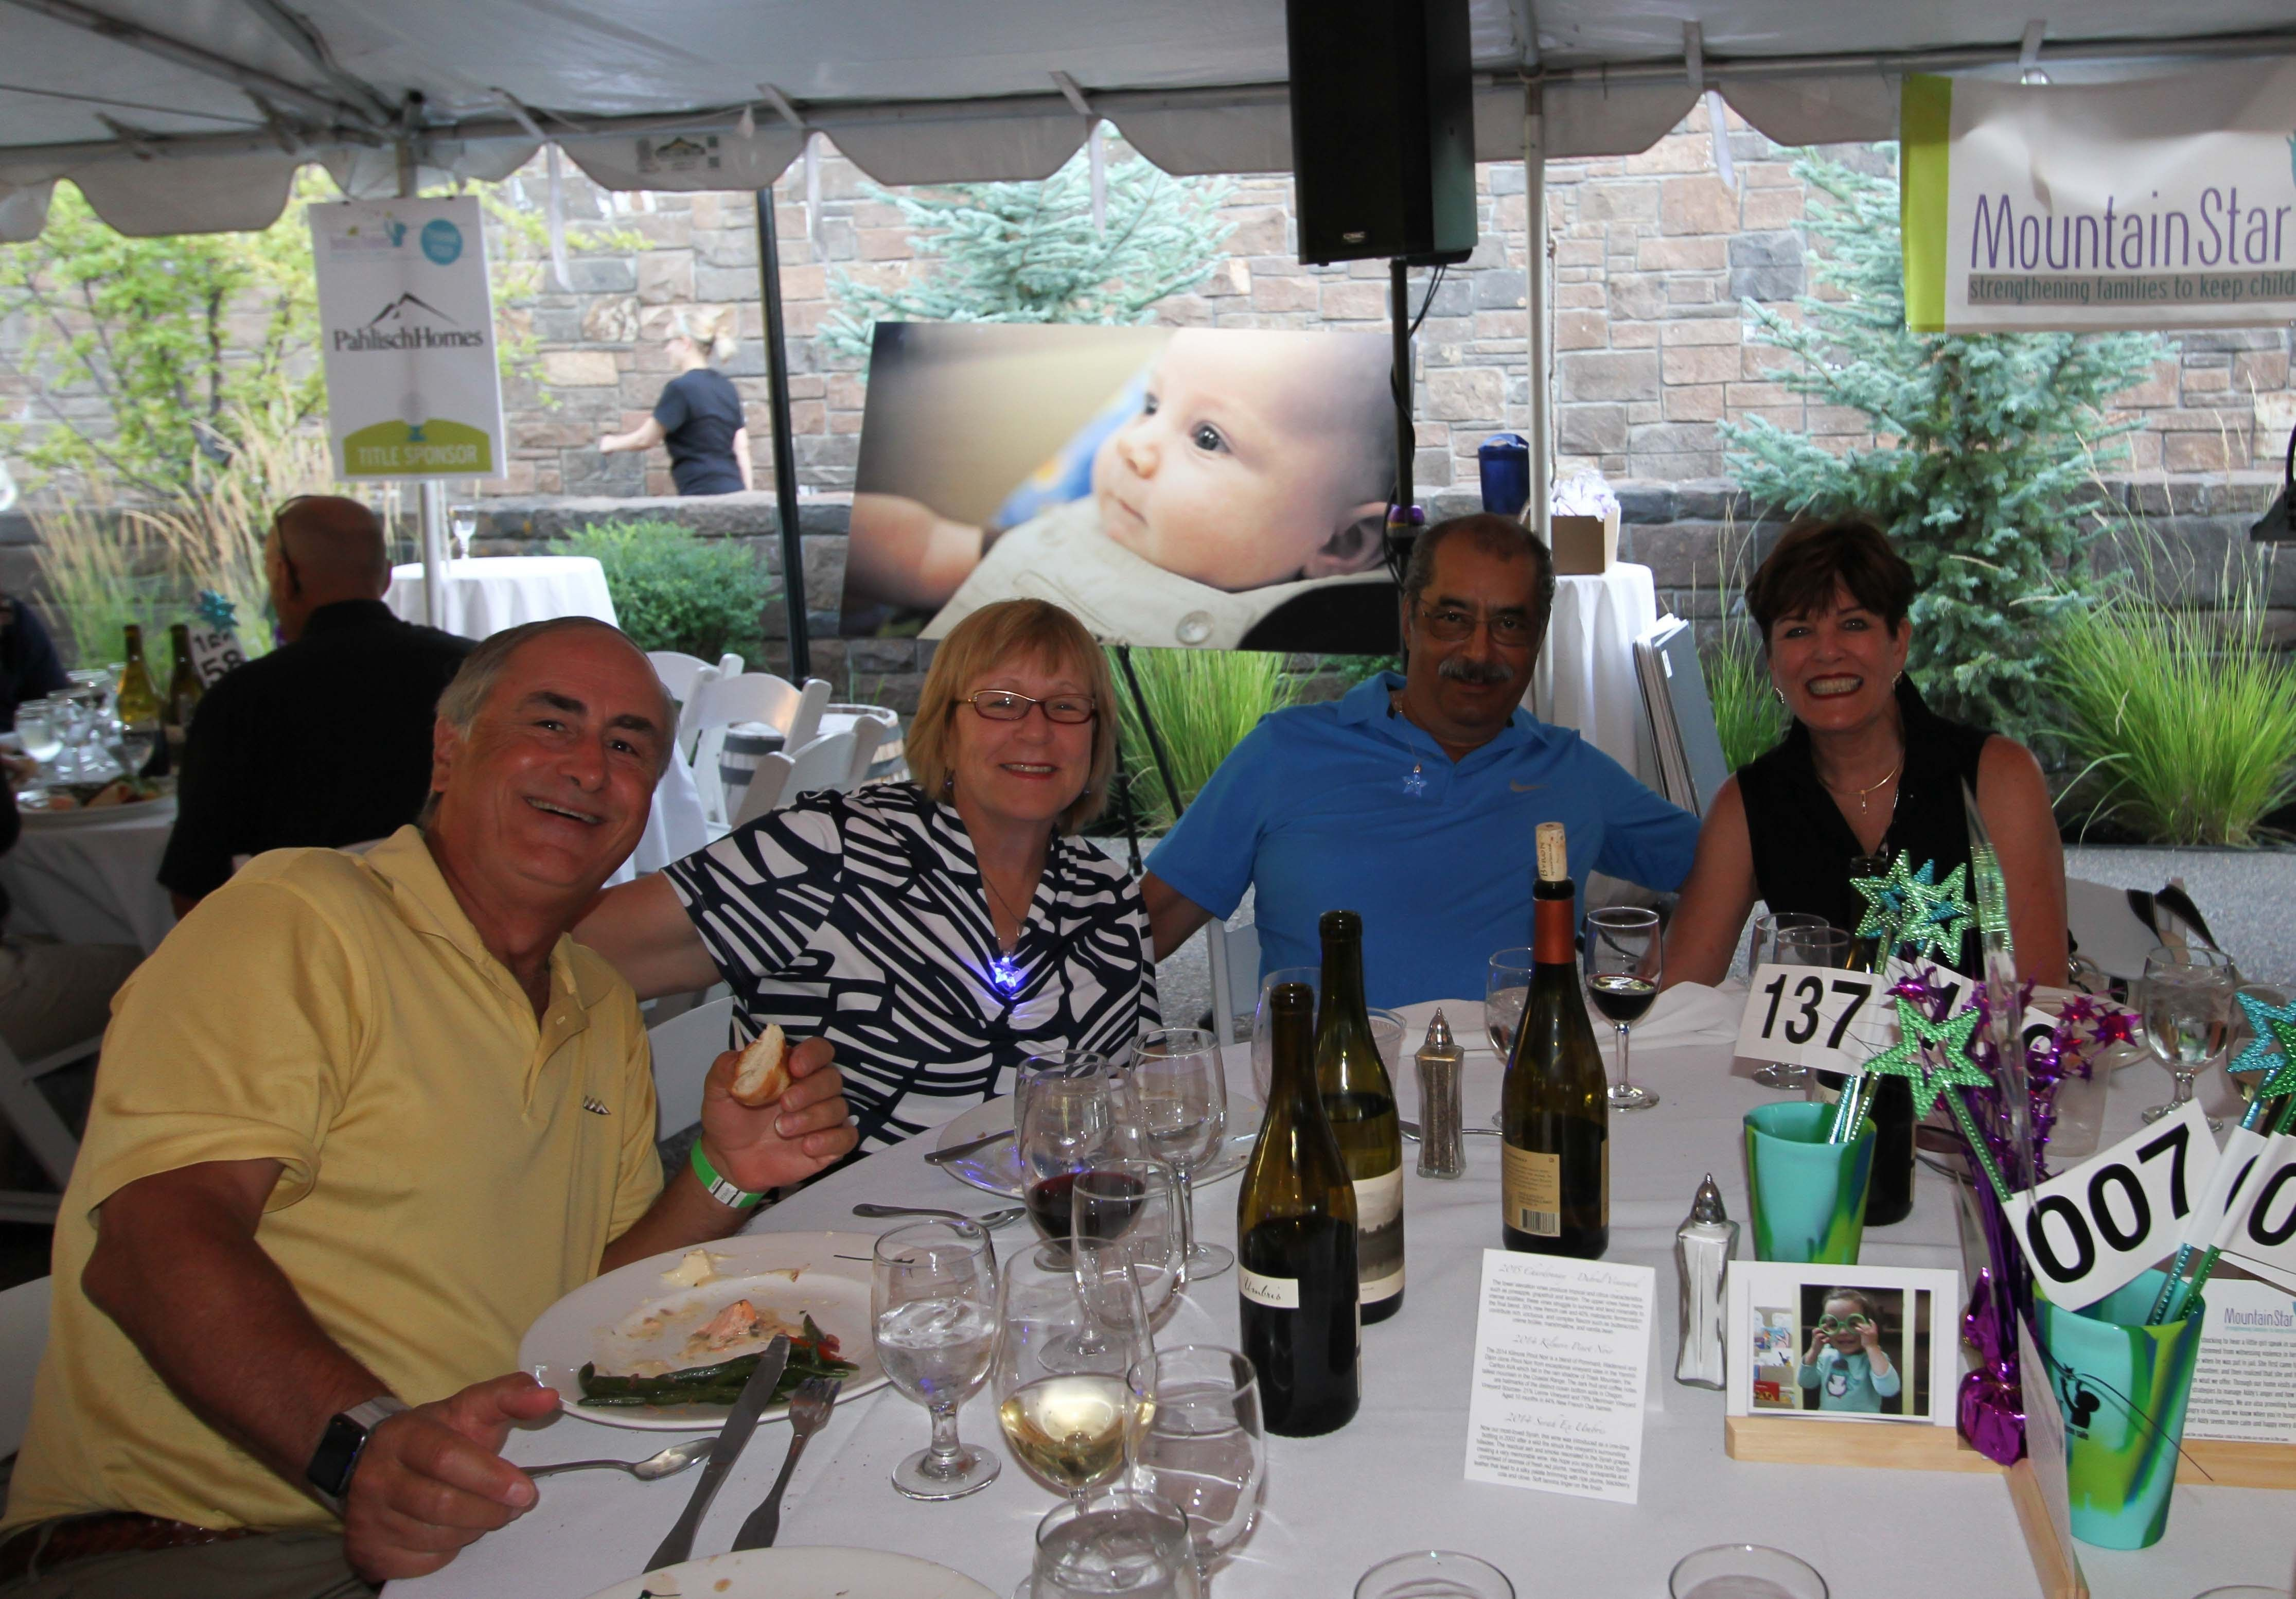 Birdies 4 Babies Event Raises Thousands to Prevent Child Abuse and Neglect